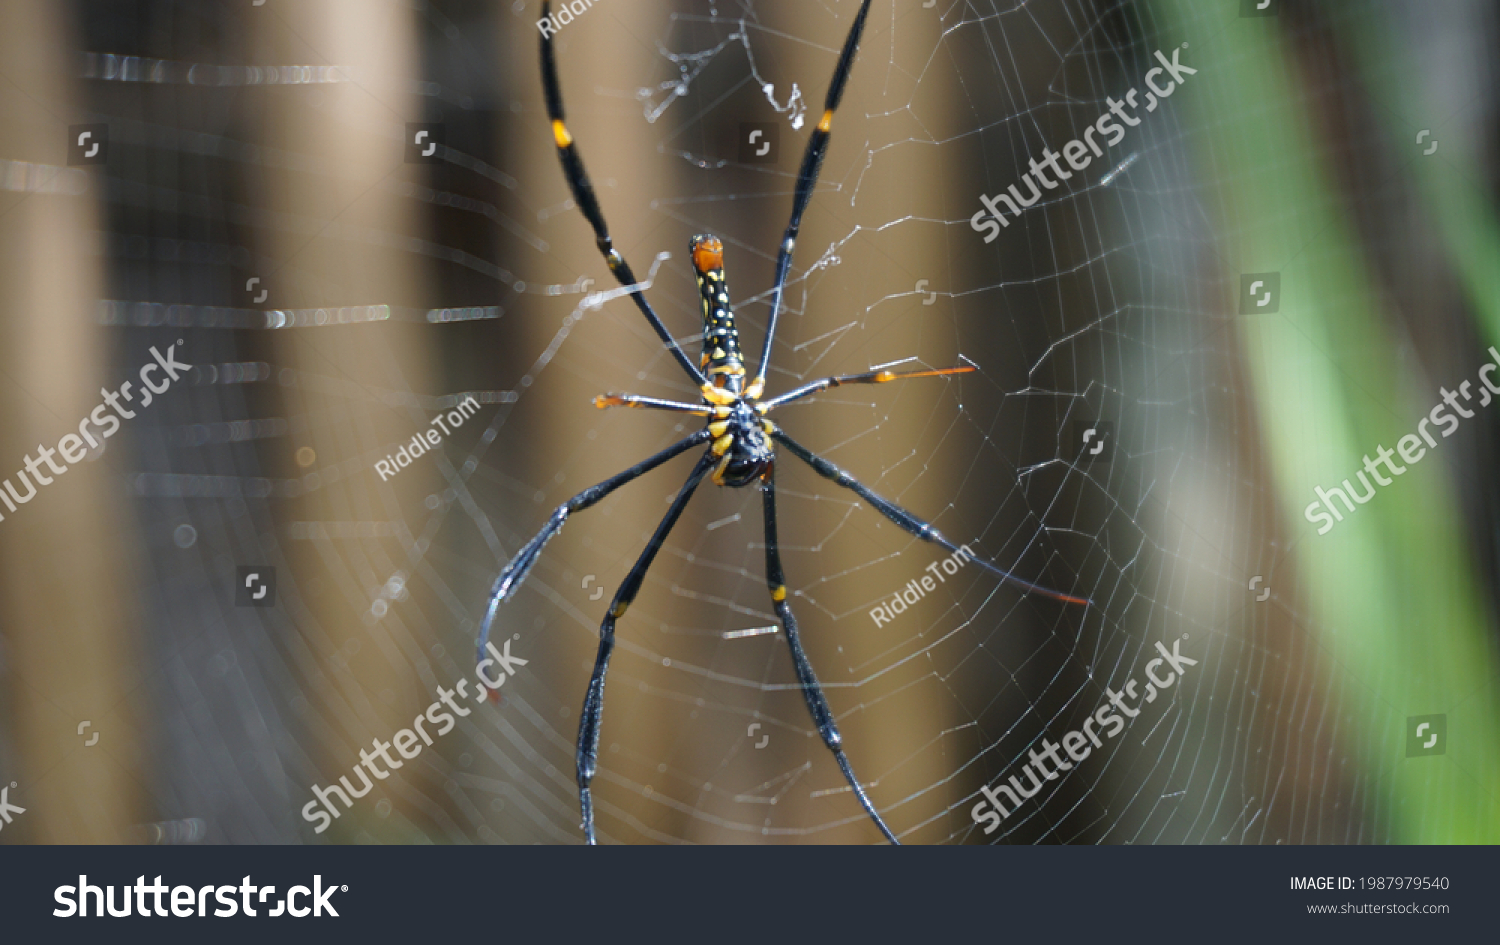 Black and Yellow Spider on the Web #1987979540